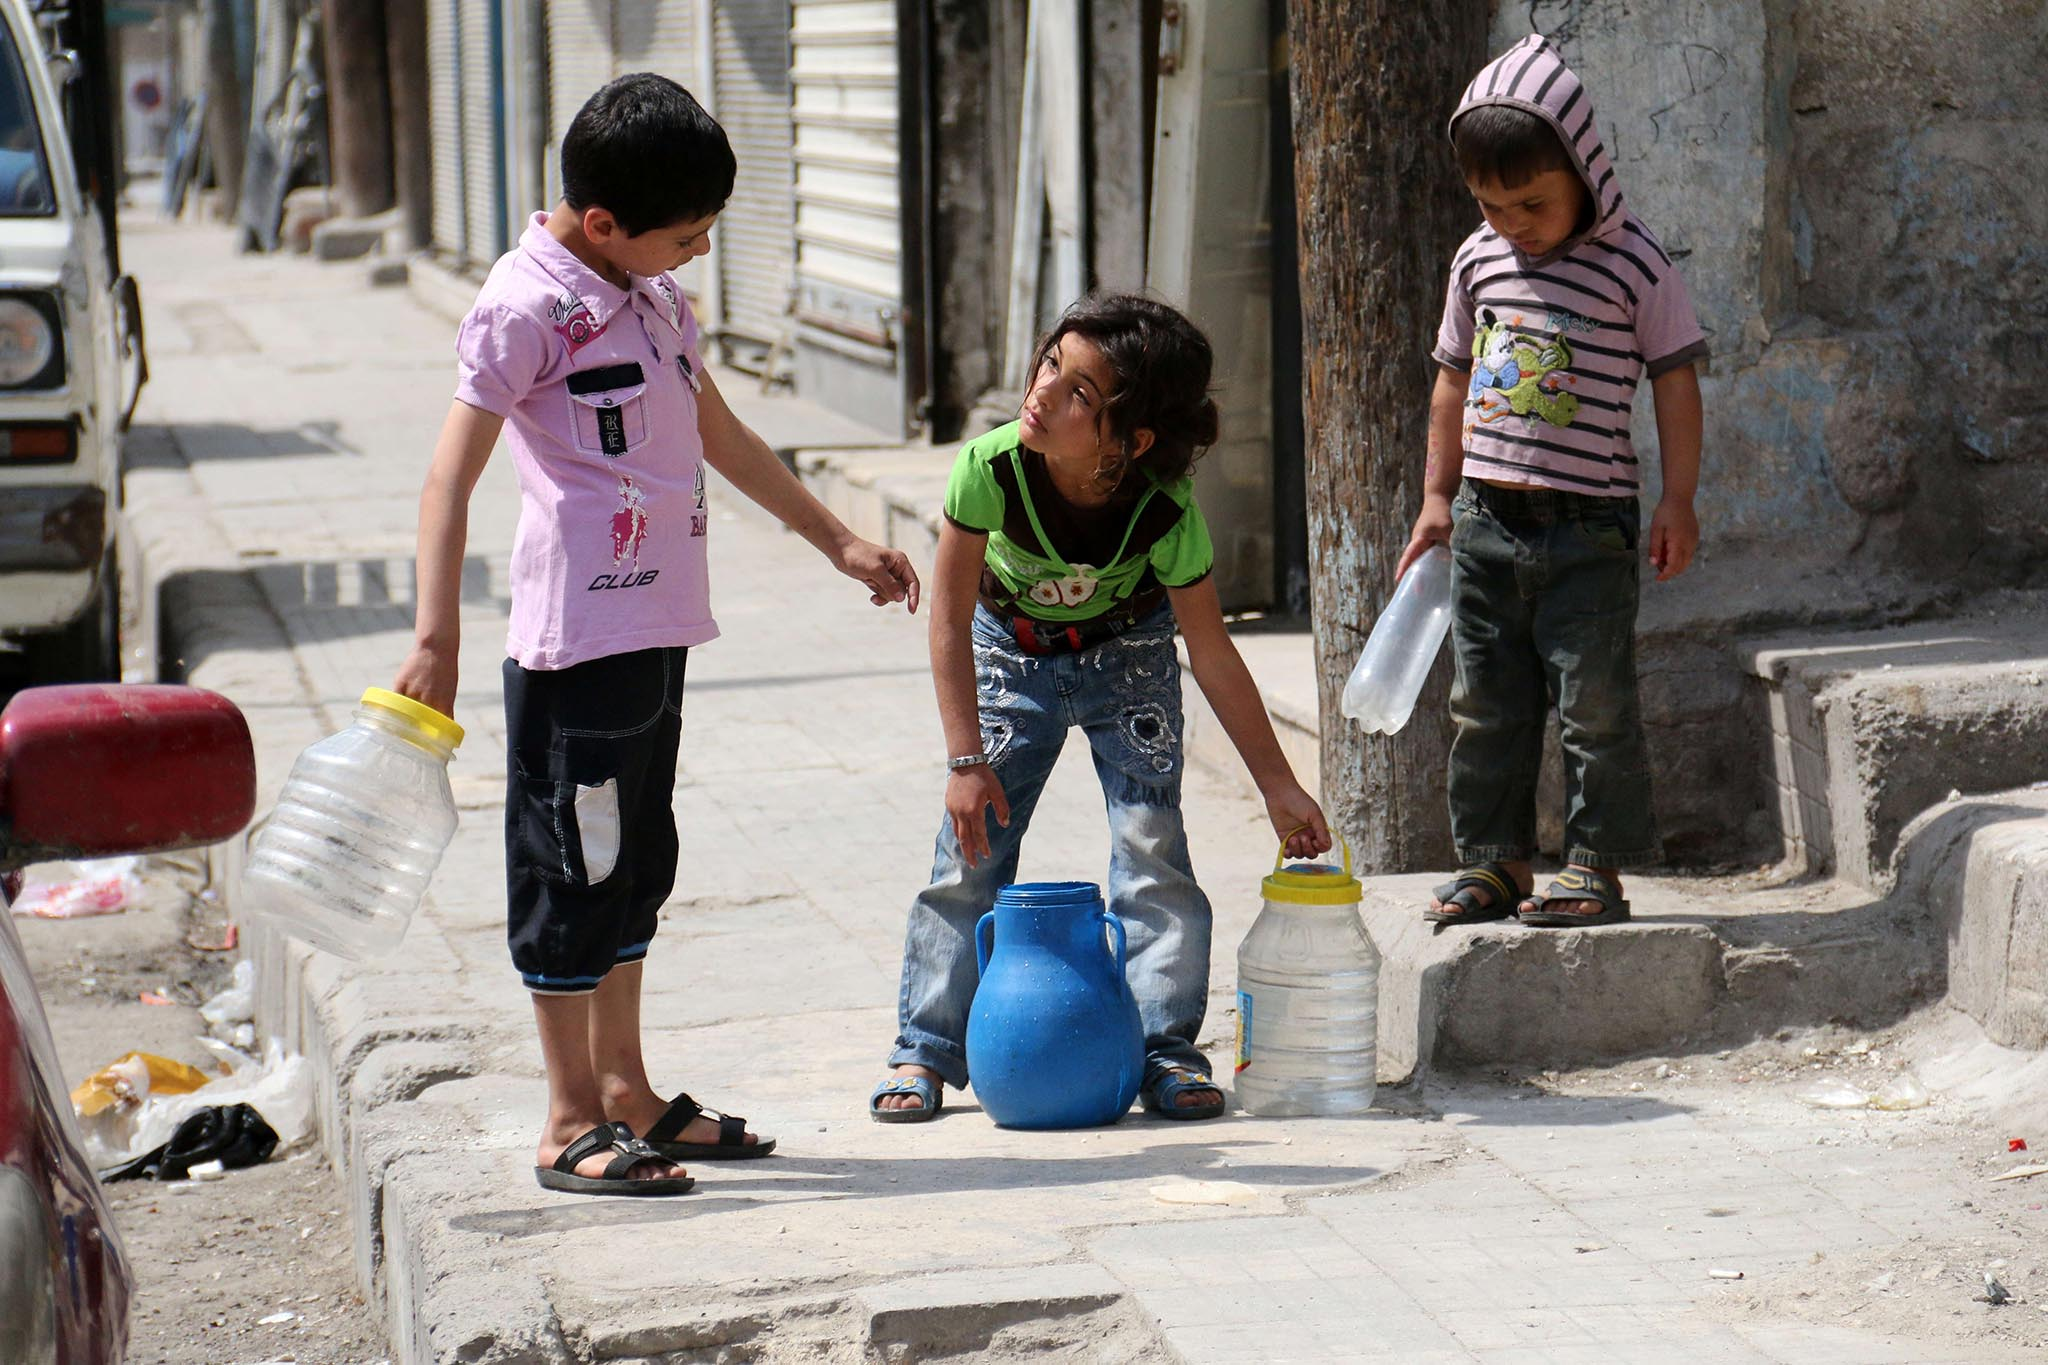 Children carry buckets of water in a rebel-held area in Aleppo on May 12, 2014. Residents of Syria's second city Aleppo have been without water for more than a week because jihadists have cut supplies into rebel and regime-held areas, the Syrian Observatory for Human Rights said on May 10. AFP PHOTO/ZEIN AL-RIFAIZEIN AL-RIFAI/AFP/Getty Images